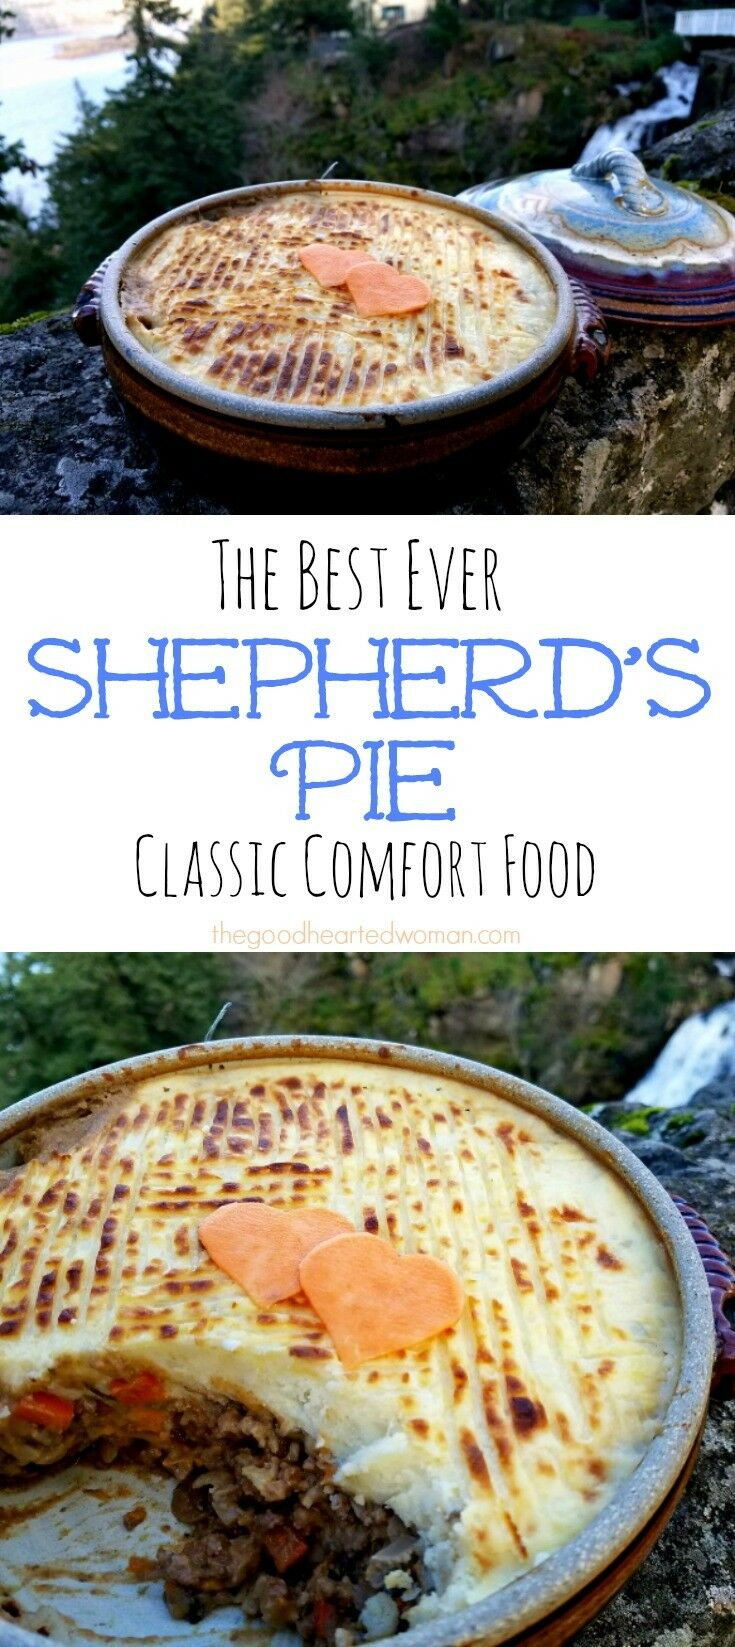 Shepherd's Pie is classic comfort food. One bite of this time-tested family favorite will wrap you in a blanket as warm as a winter fire. It's just that good. {Recipe} | The Good Hearted Woman